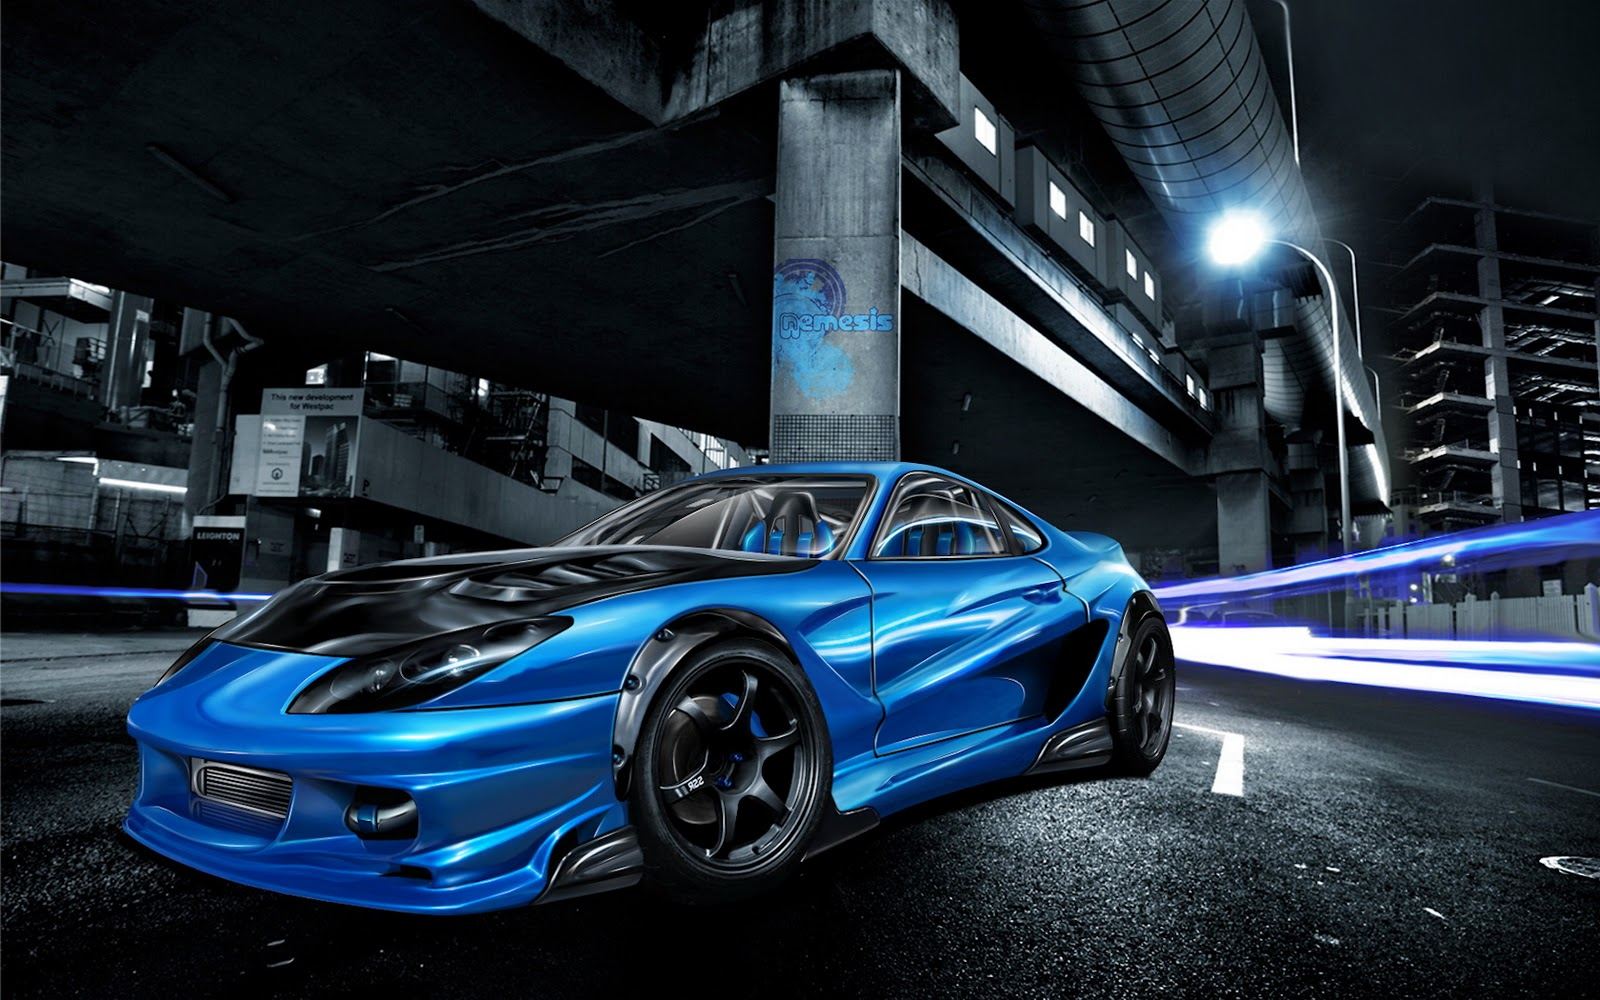 Street Racing Cars 2012 Photos